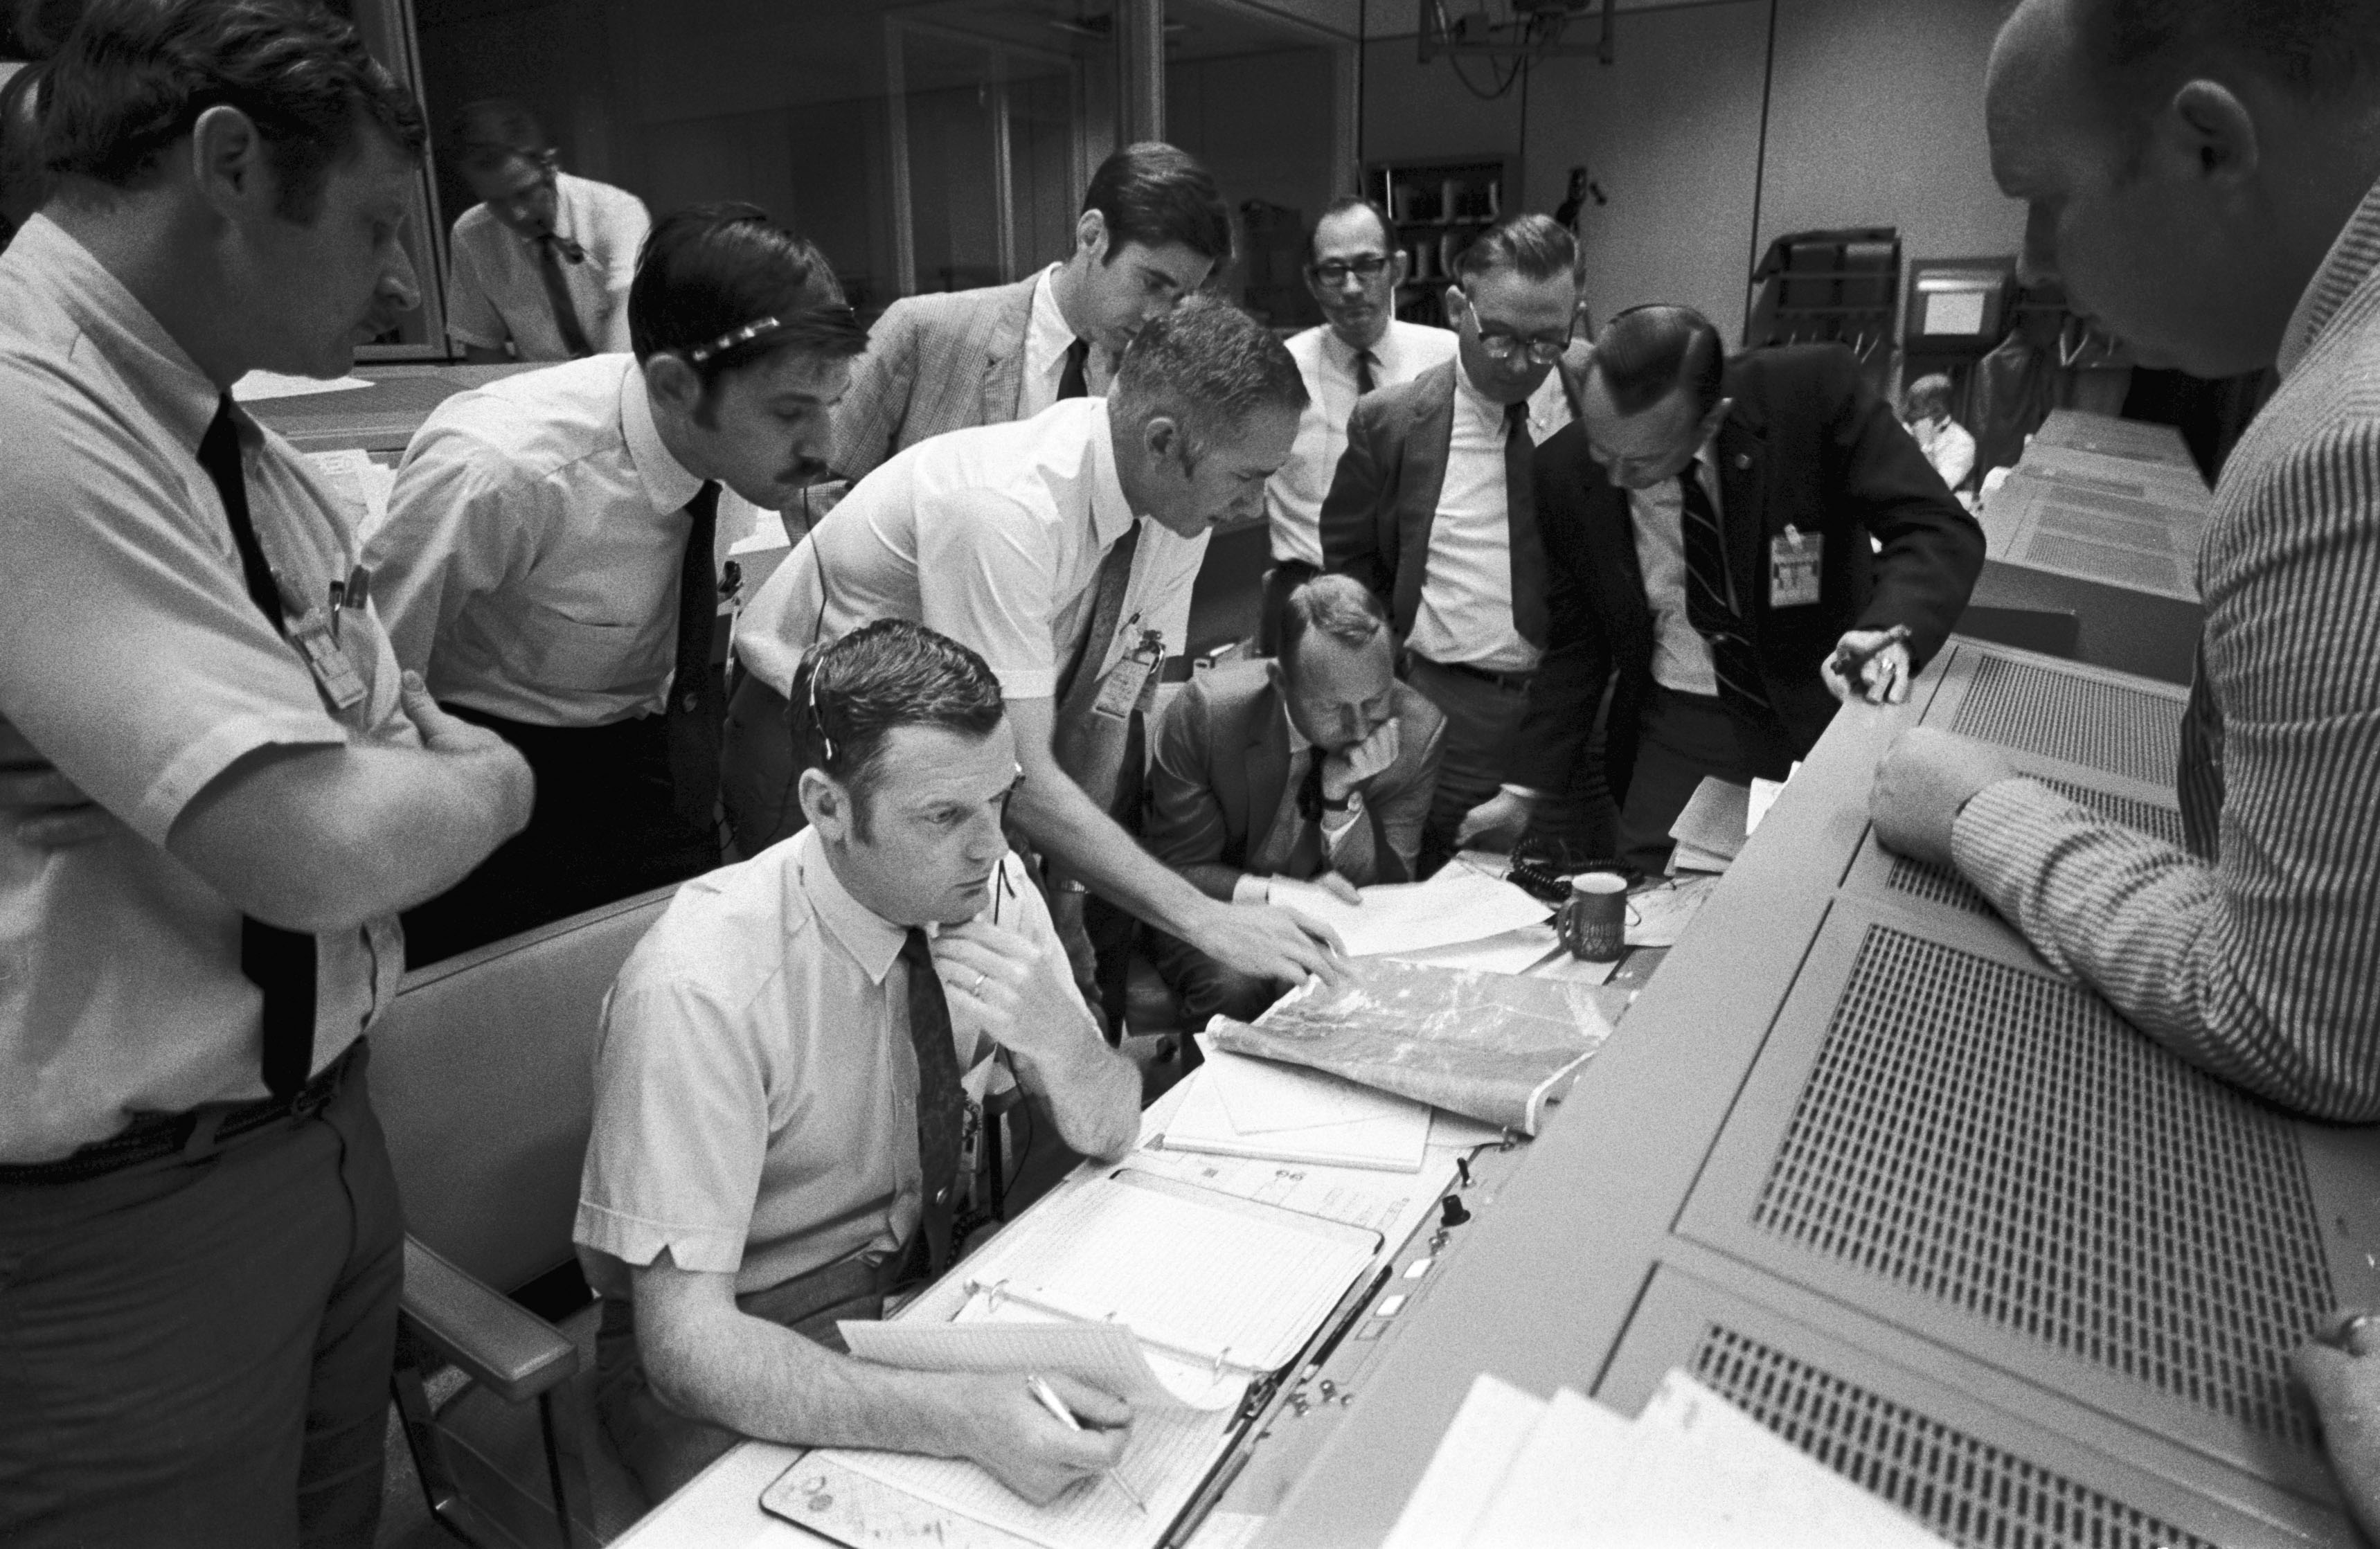 an analysis of the mistakes that led to the failure of apollo 13 space mission Technology and culture 433 (2002) 645-646 failure is not an option is gene kranz's epic personal account of the liftoff of the us space program kranz was one of a select group recruited to.